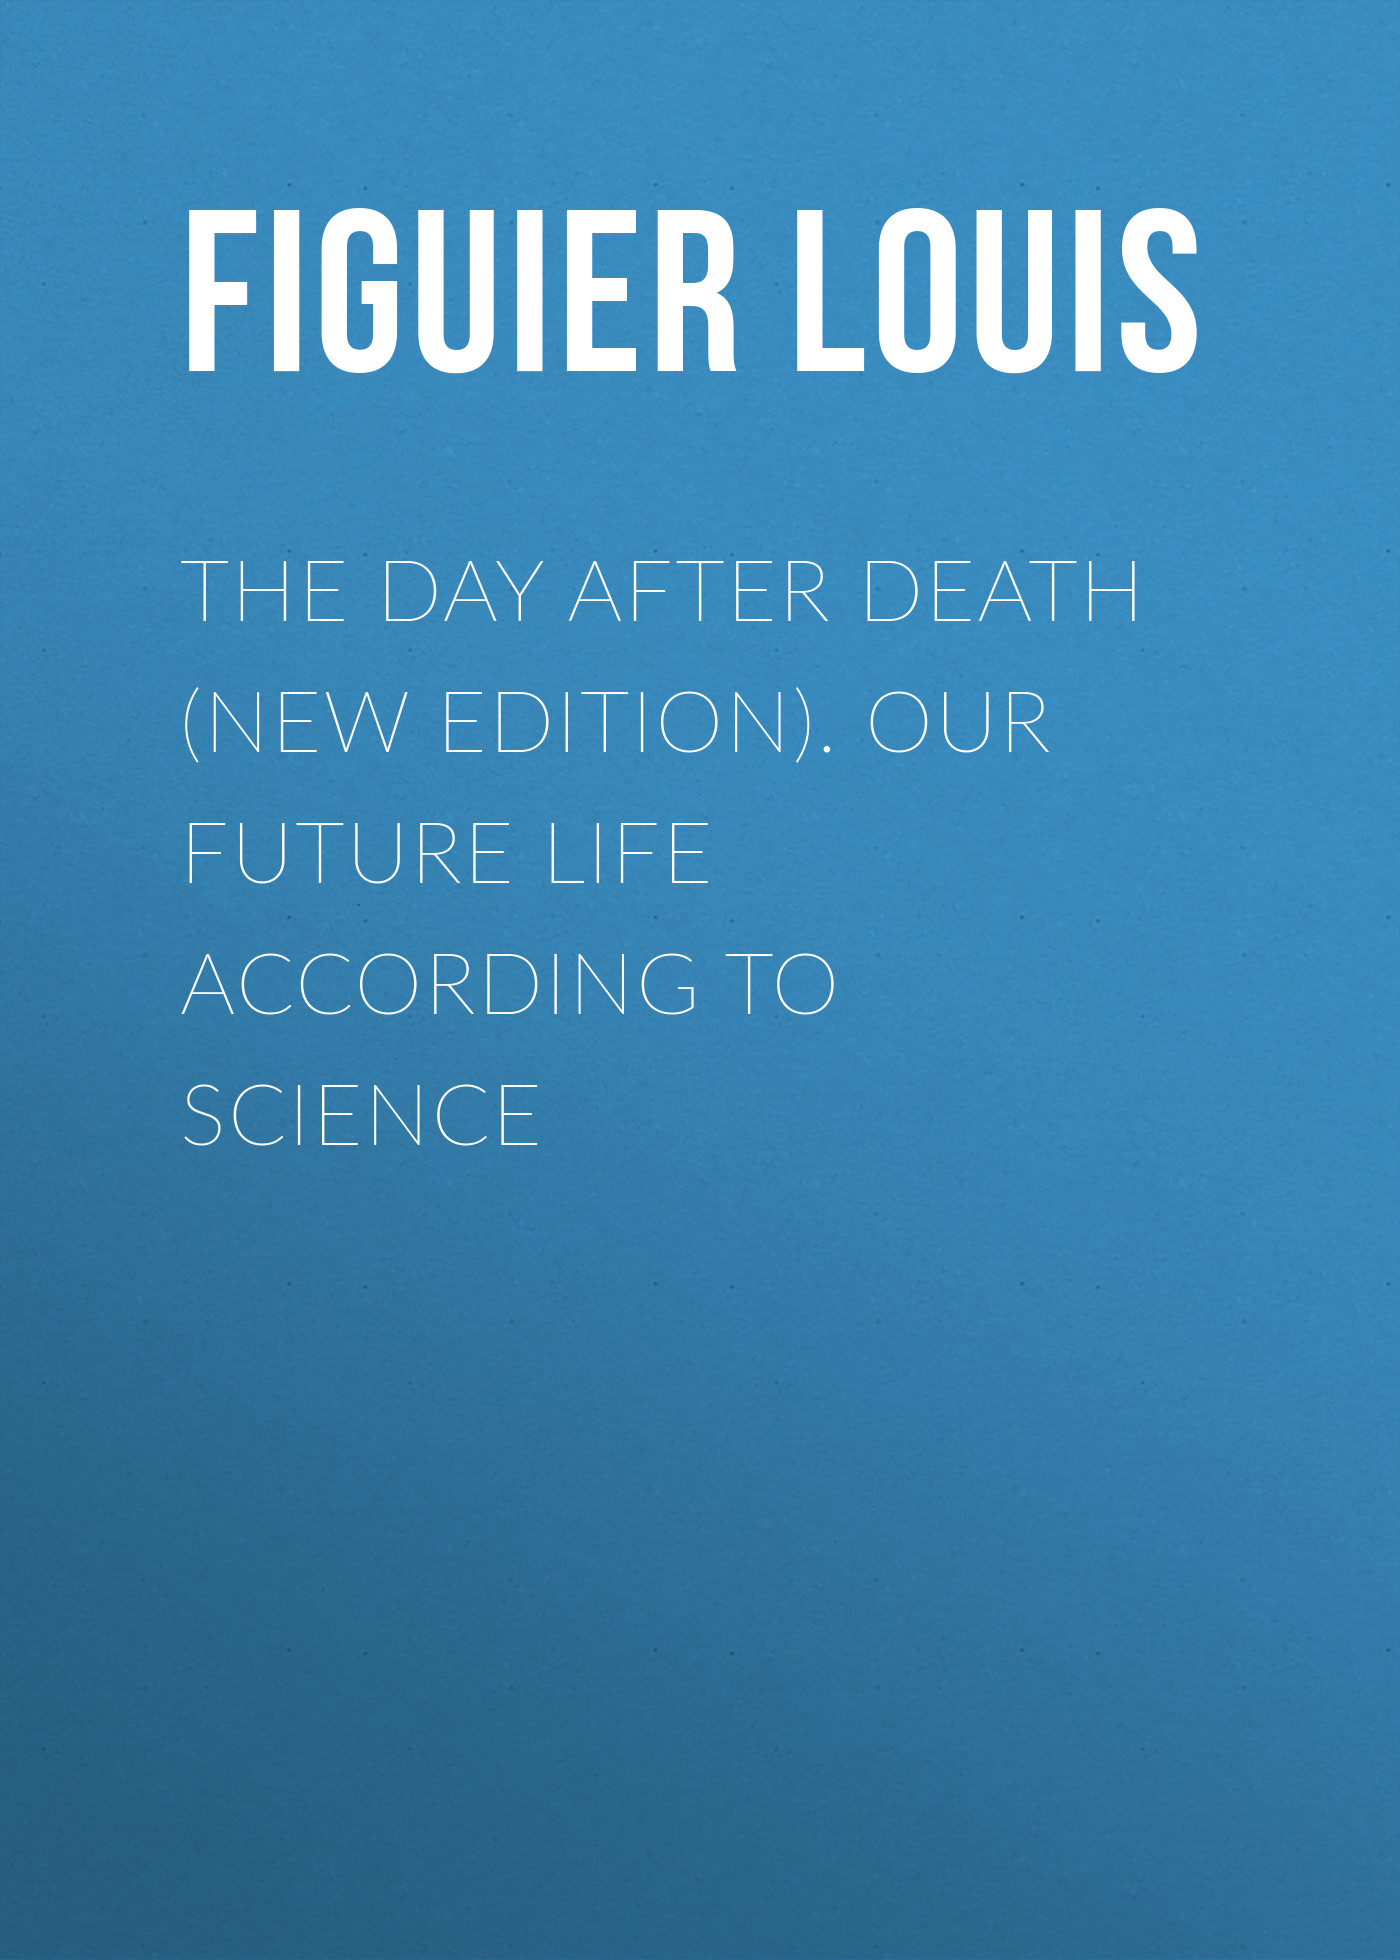 Figuier Louis The Day After Death (New Edition). Our Future Life According to Science bp herbert bury russian life to day